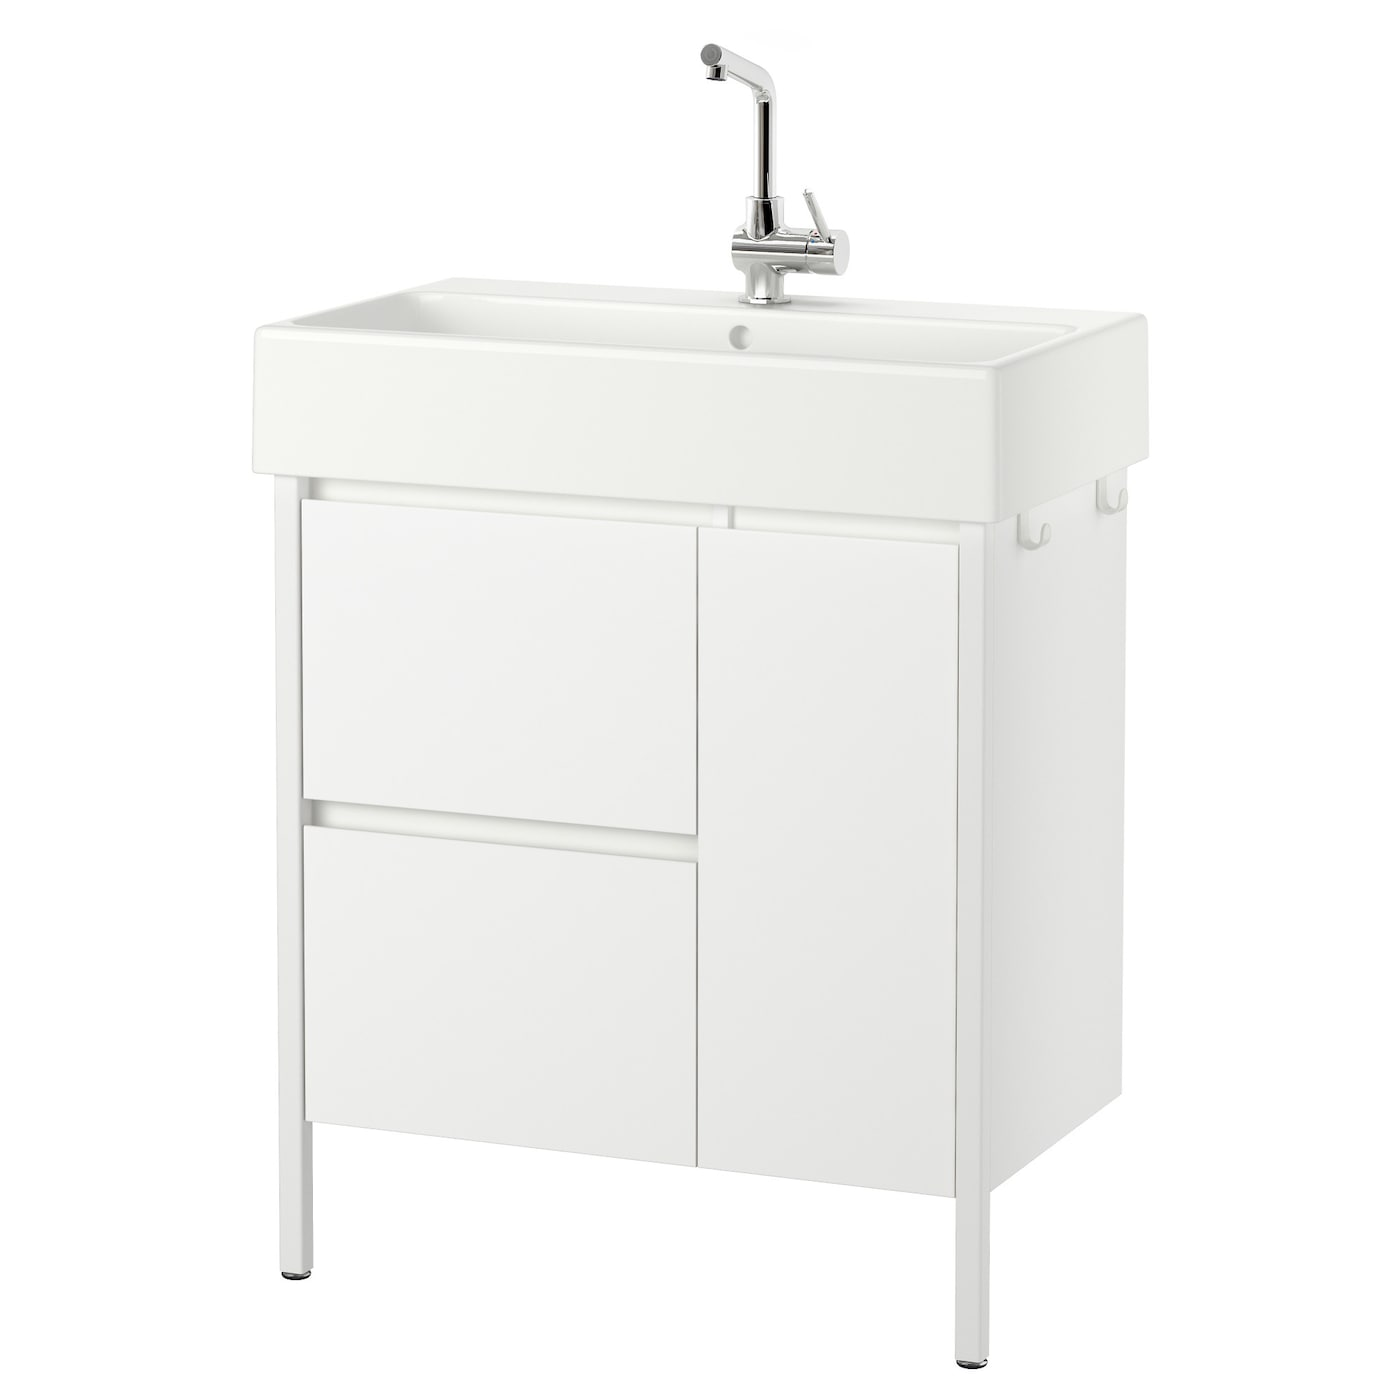 Ikea Yddingen Wash Stand With 2 Drawers 1 Door